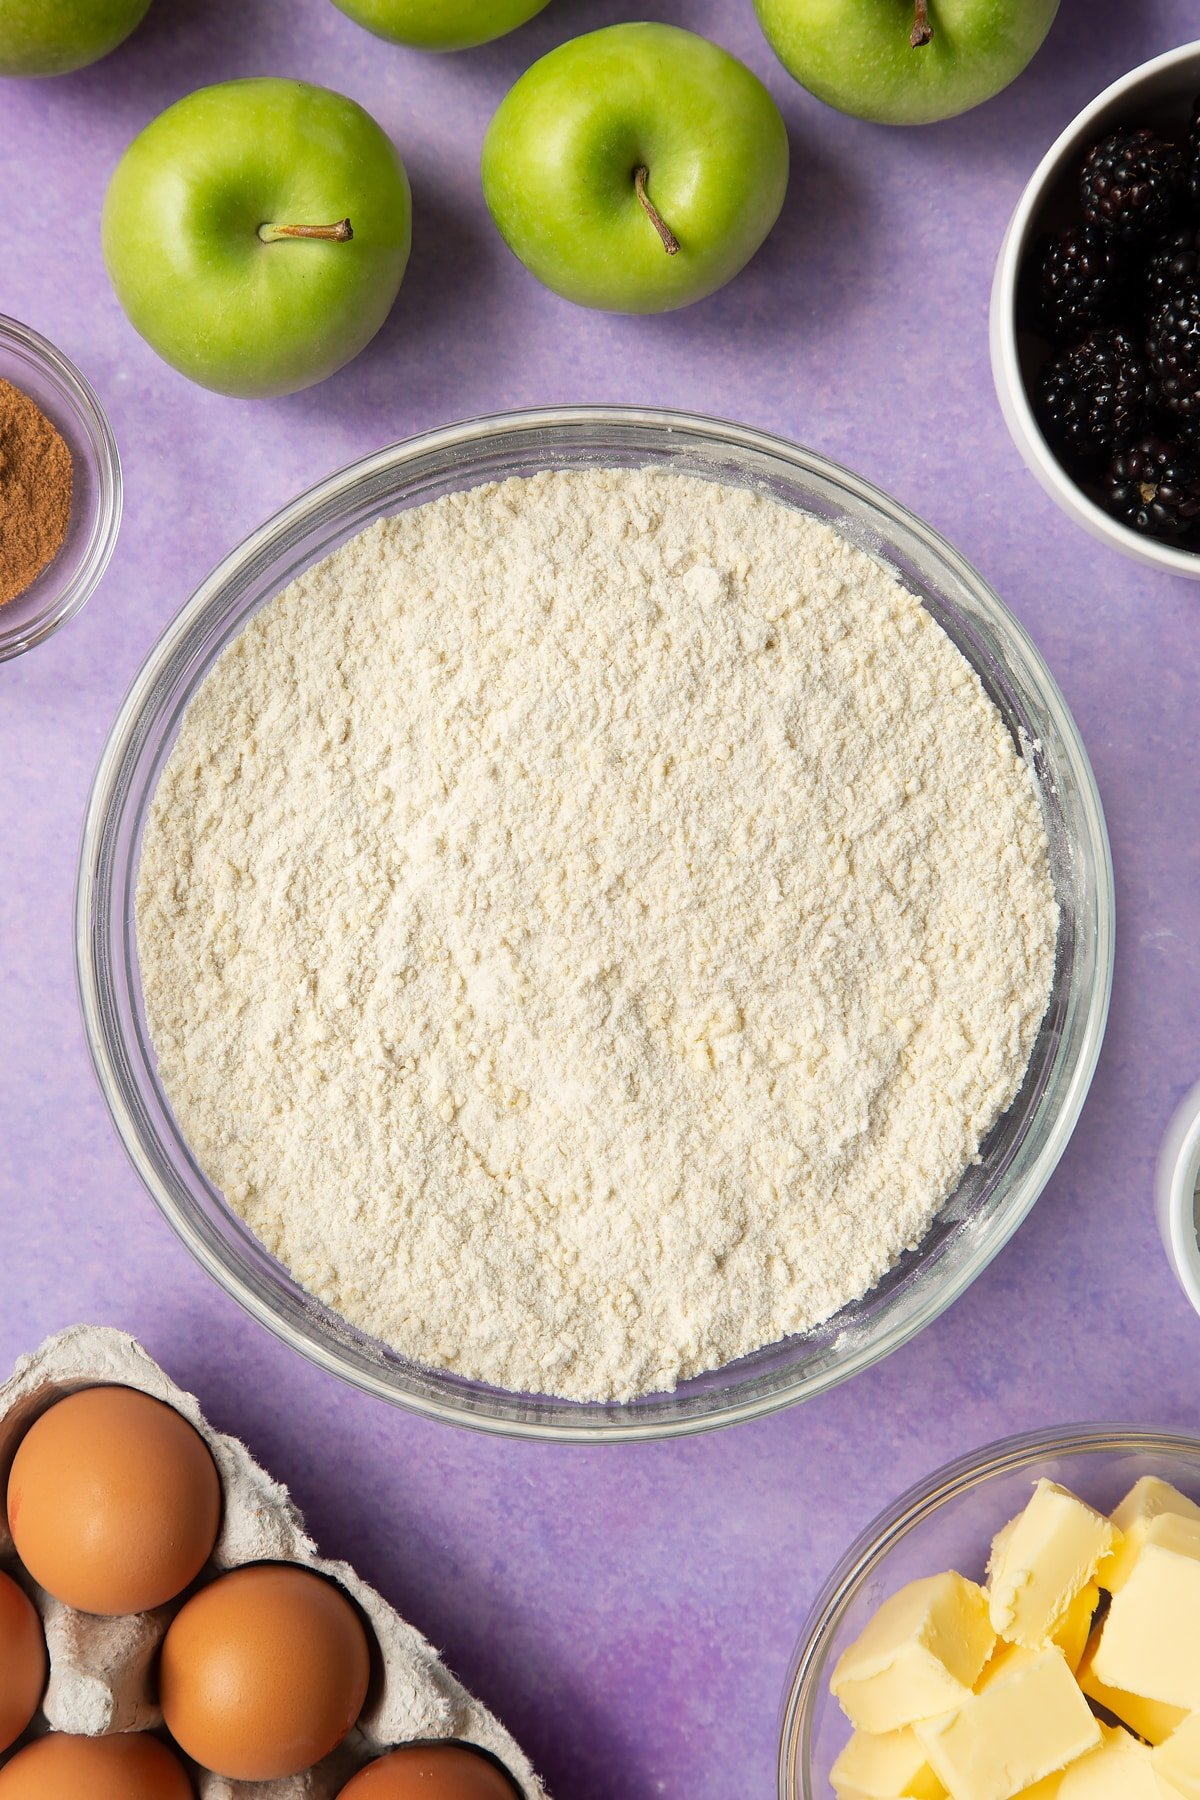 Flour, icing sugar and butter combined to a crumb in a glass mixing bowl. Ingredients to make apple and blackberry pie surround the bowl.